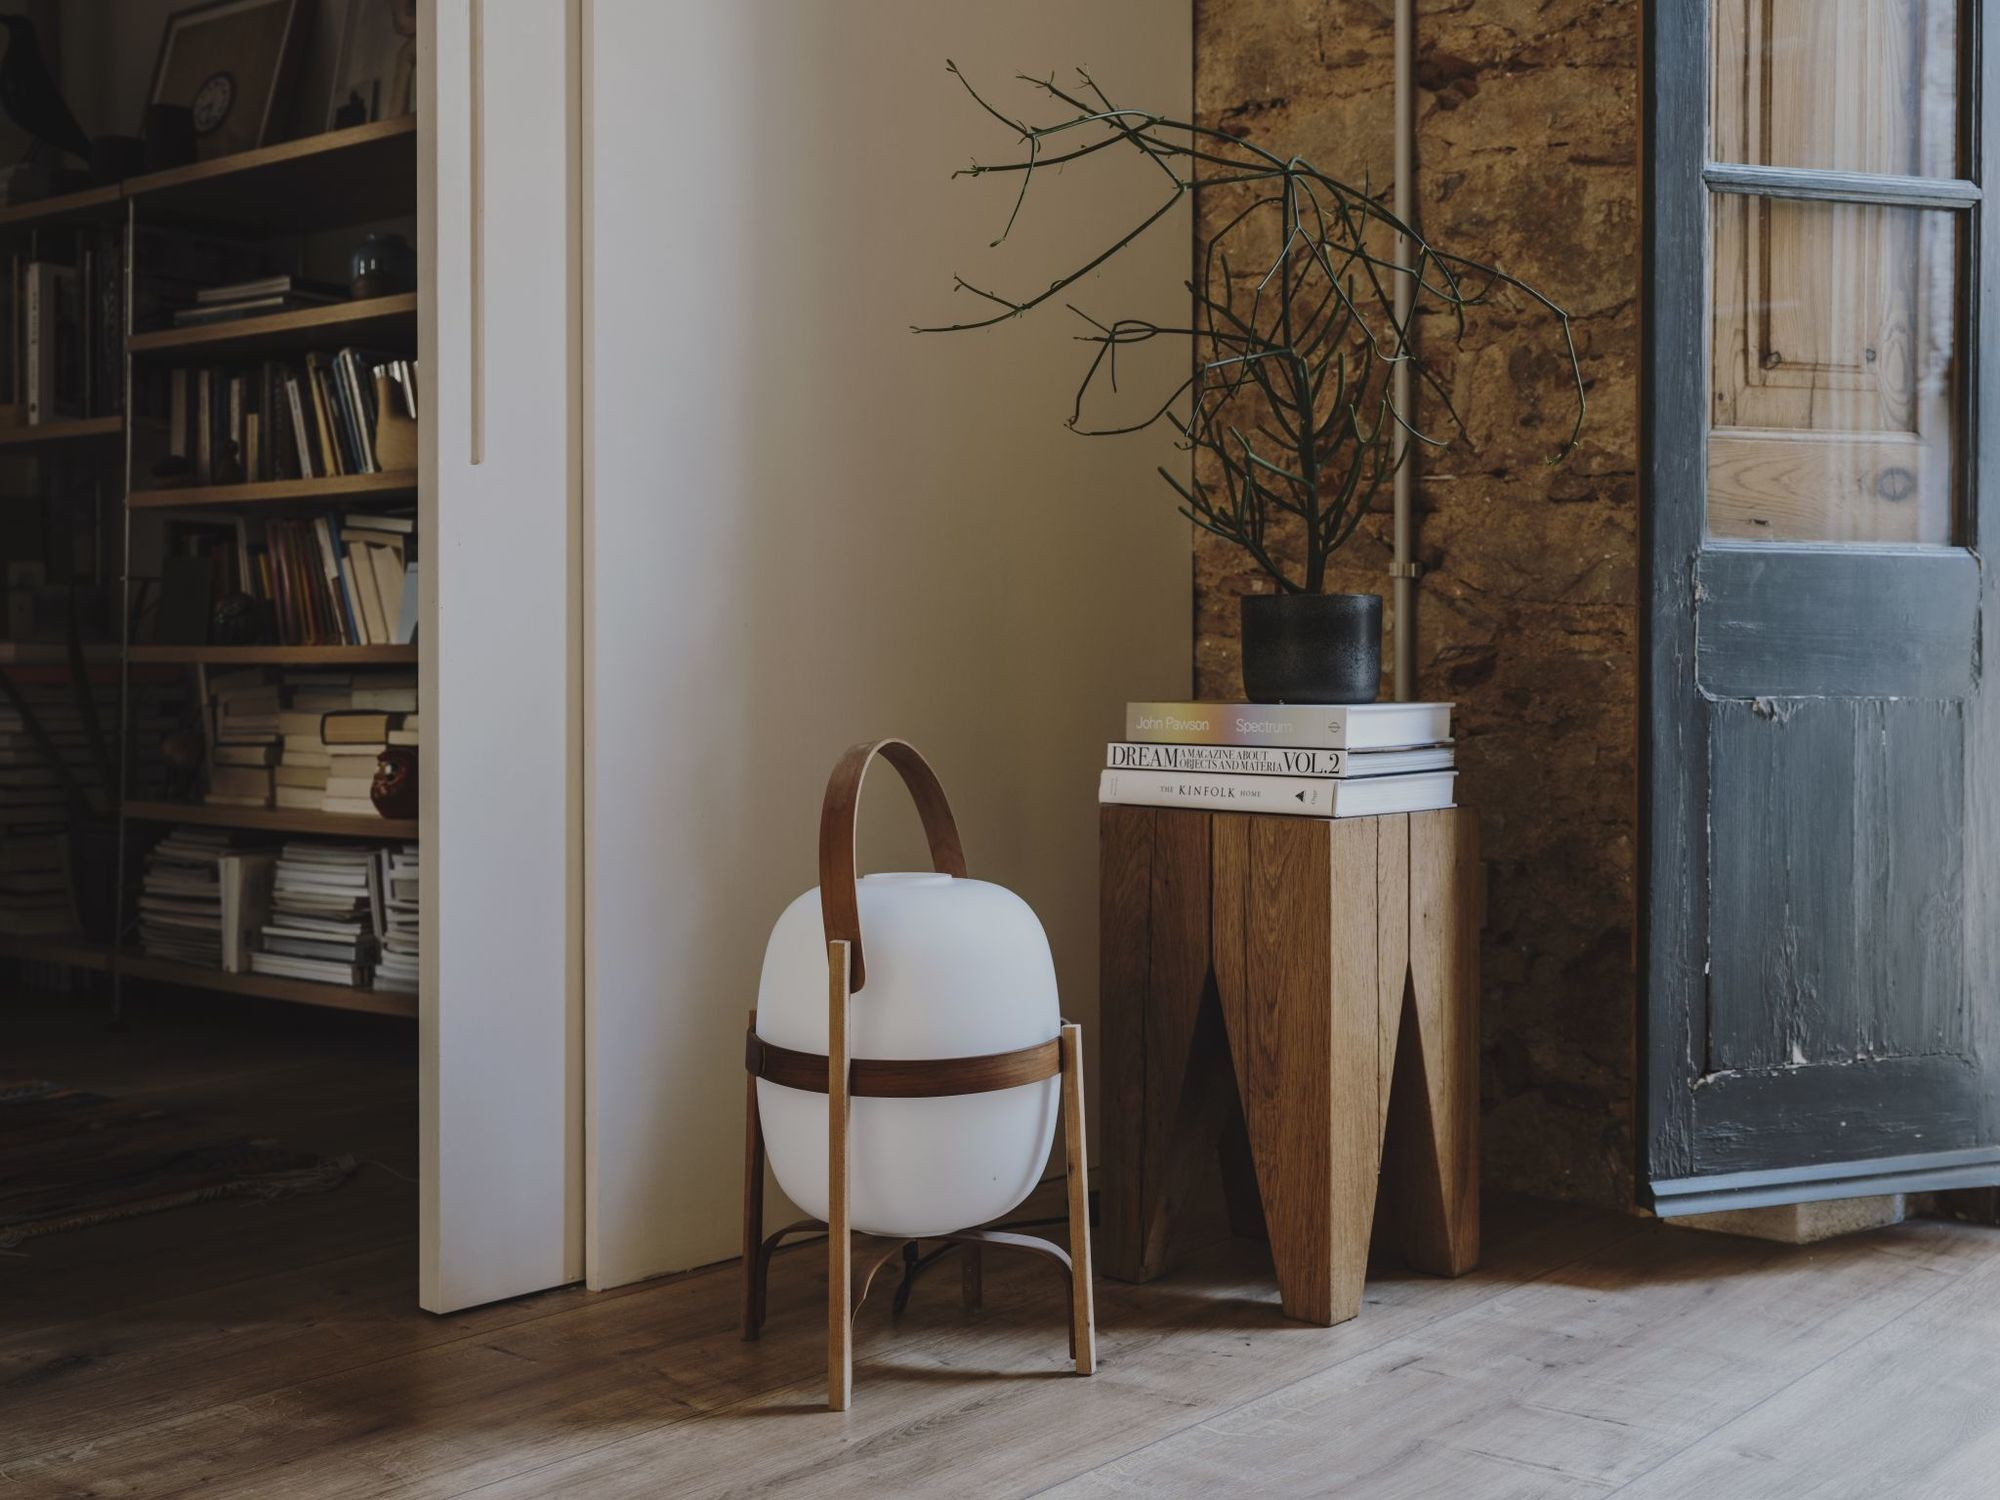 11 -A nomadic lamp with Scandinavian lines by Santa & Cole